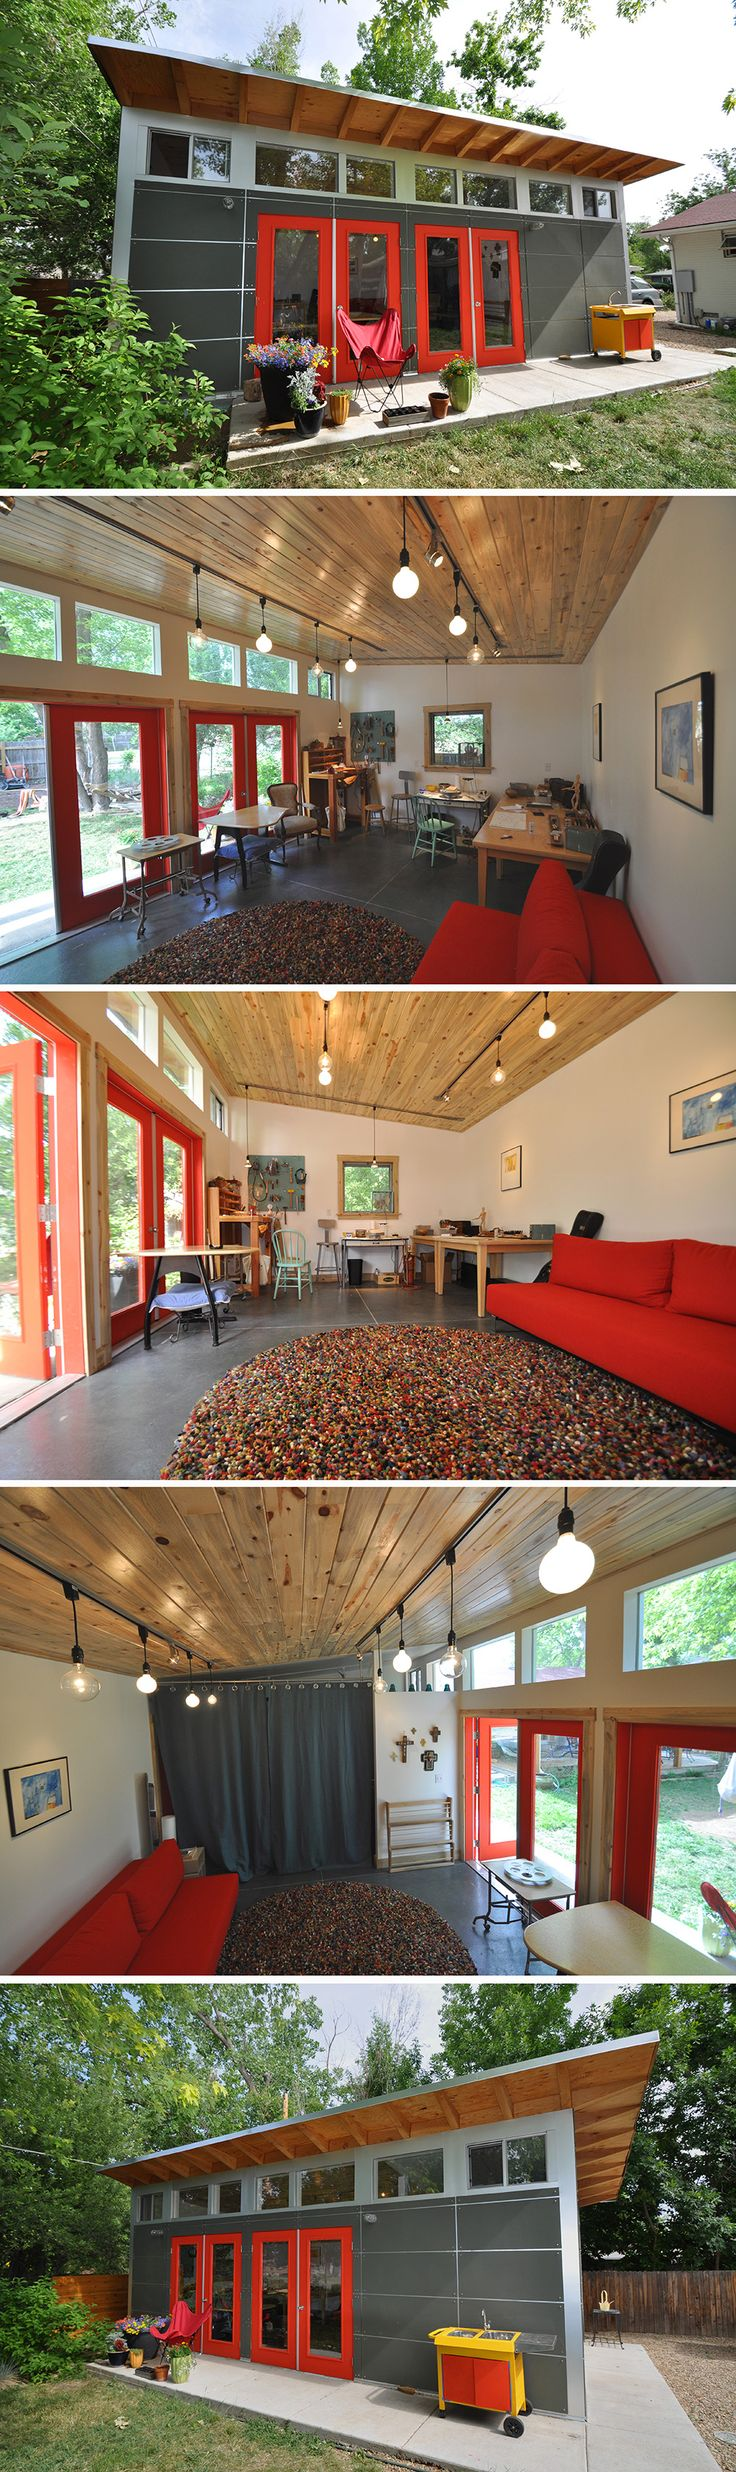 http://www.studio-shed.com/                                                                                                                                                                                 More